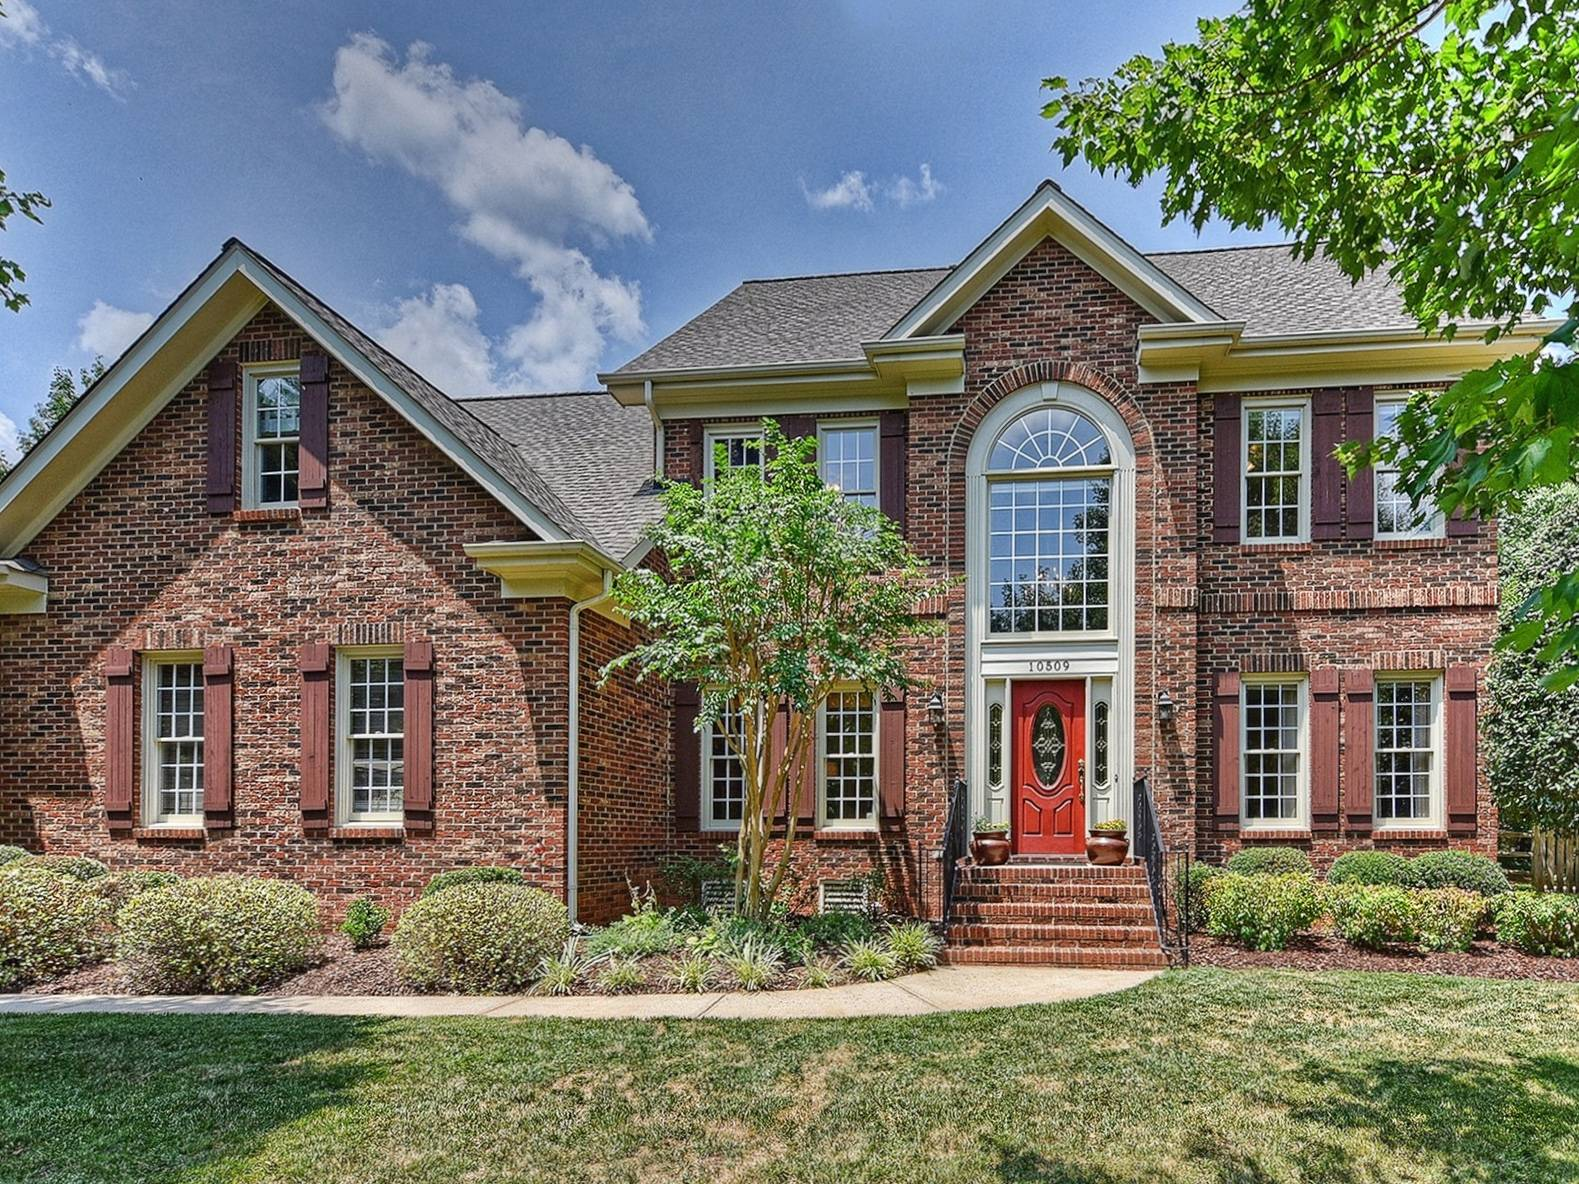 Home for sale in providence high school zone for Charlotte house